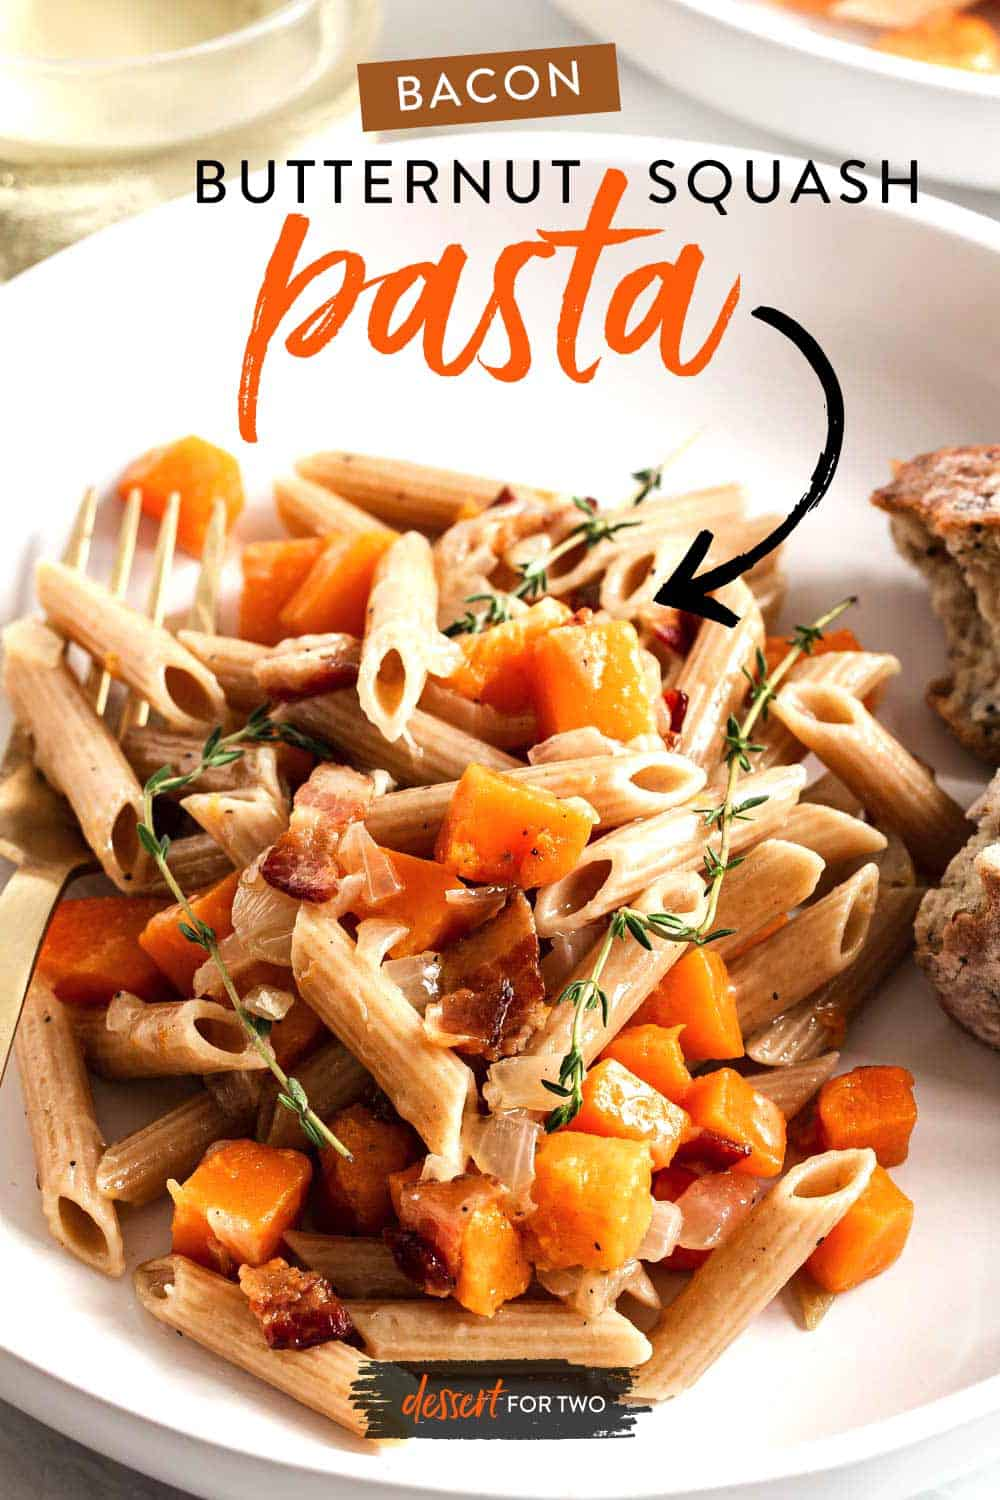 White plate with bacon butternut squash and penne pasta.